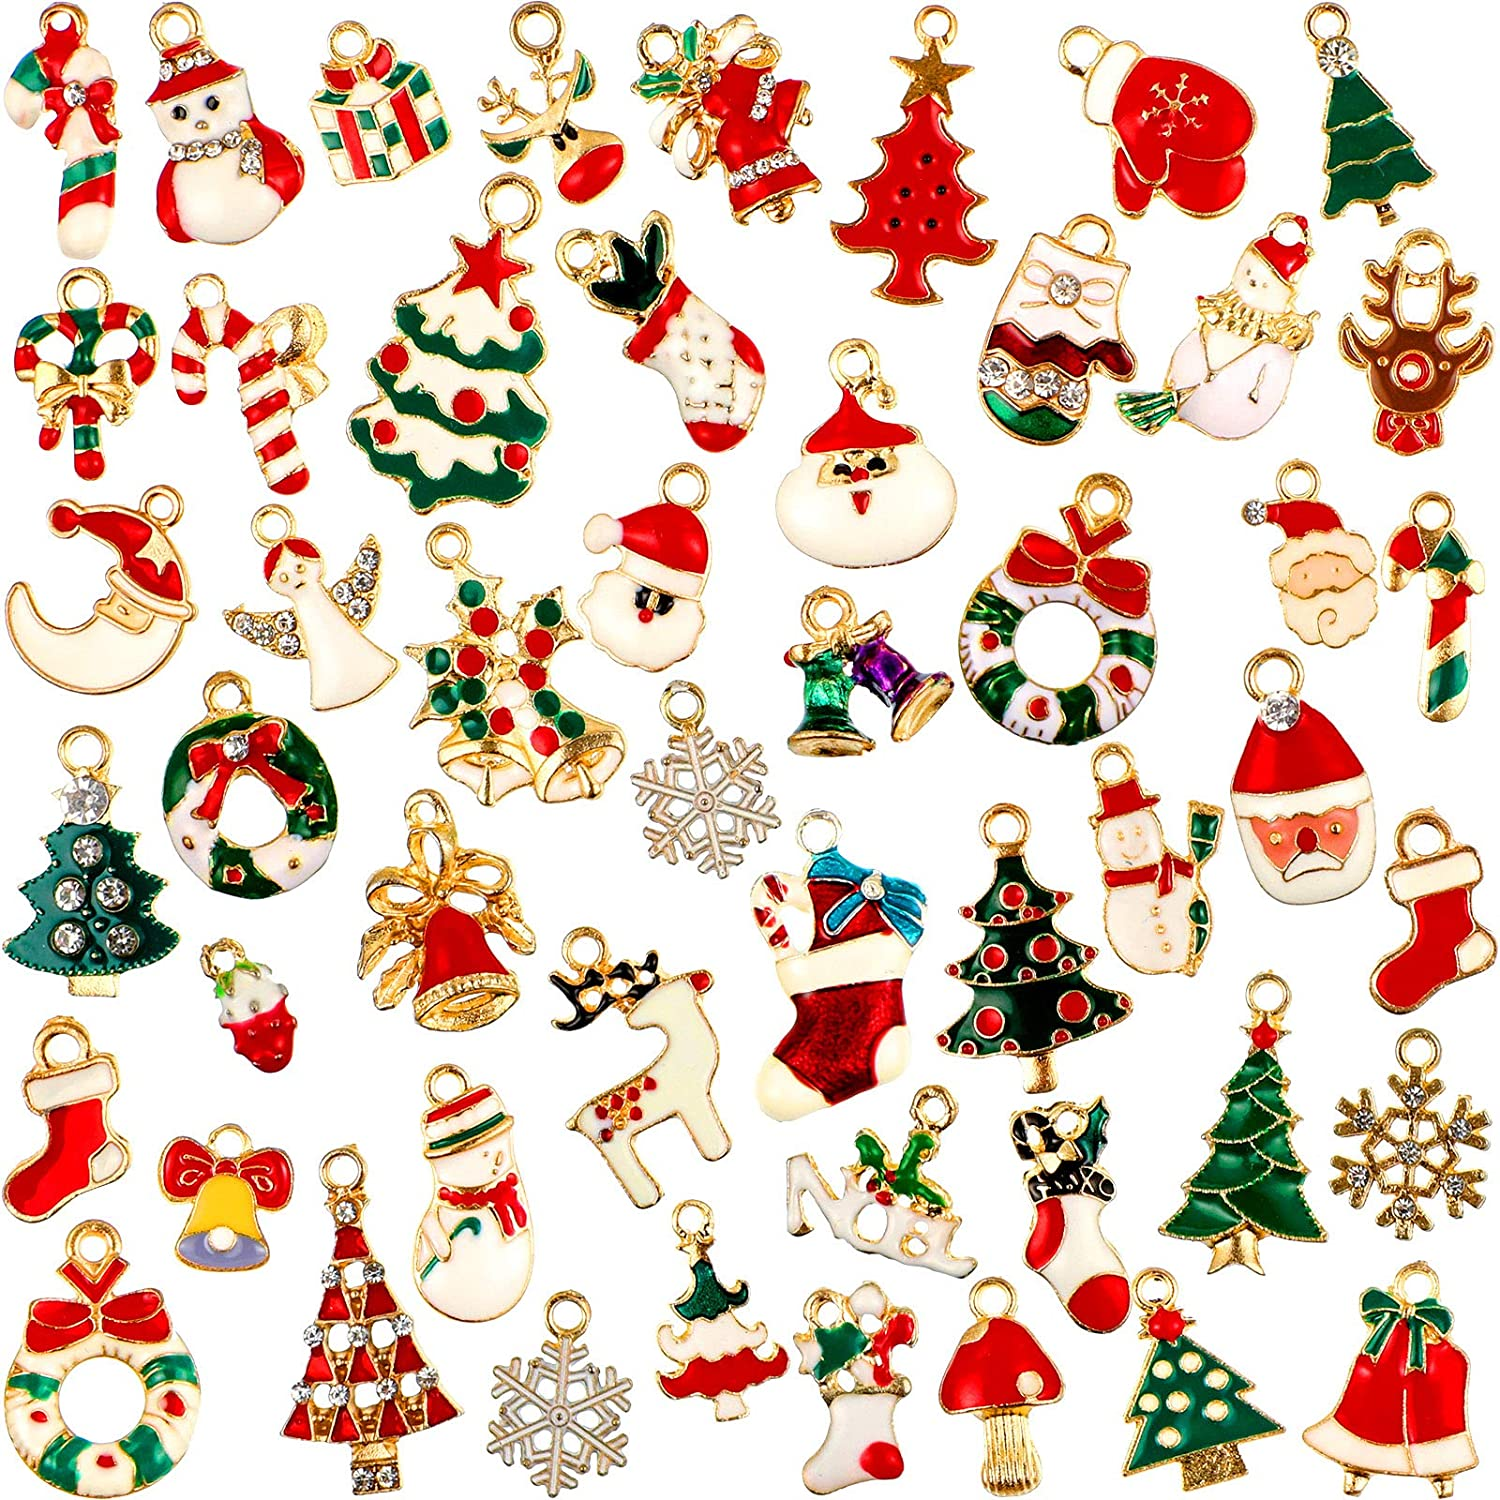 50 Pieces Christmas Pendant Charm Assorted Enamel Charm Pendant for Necklace Bracelet Jewelry Bags DIY Sewing and Making Craft Accessories